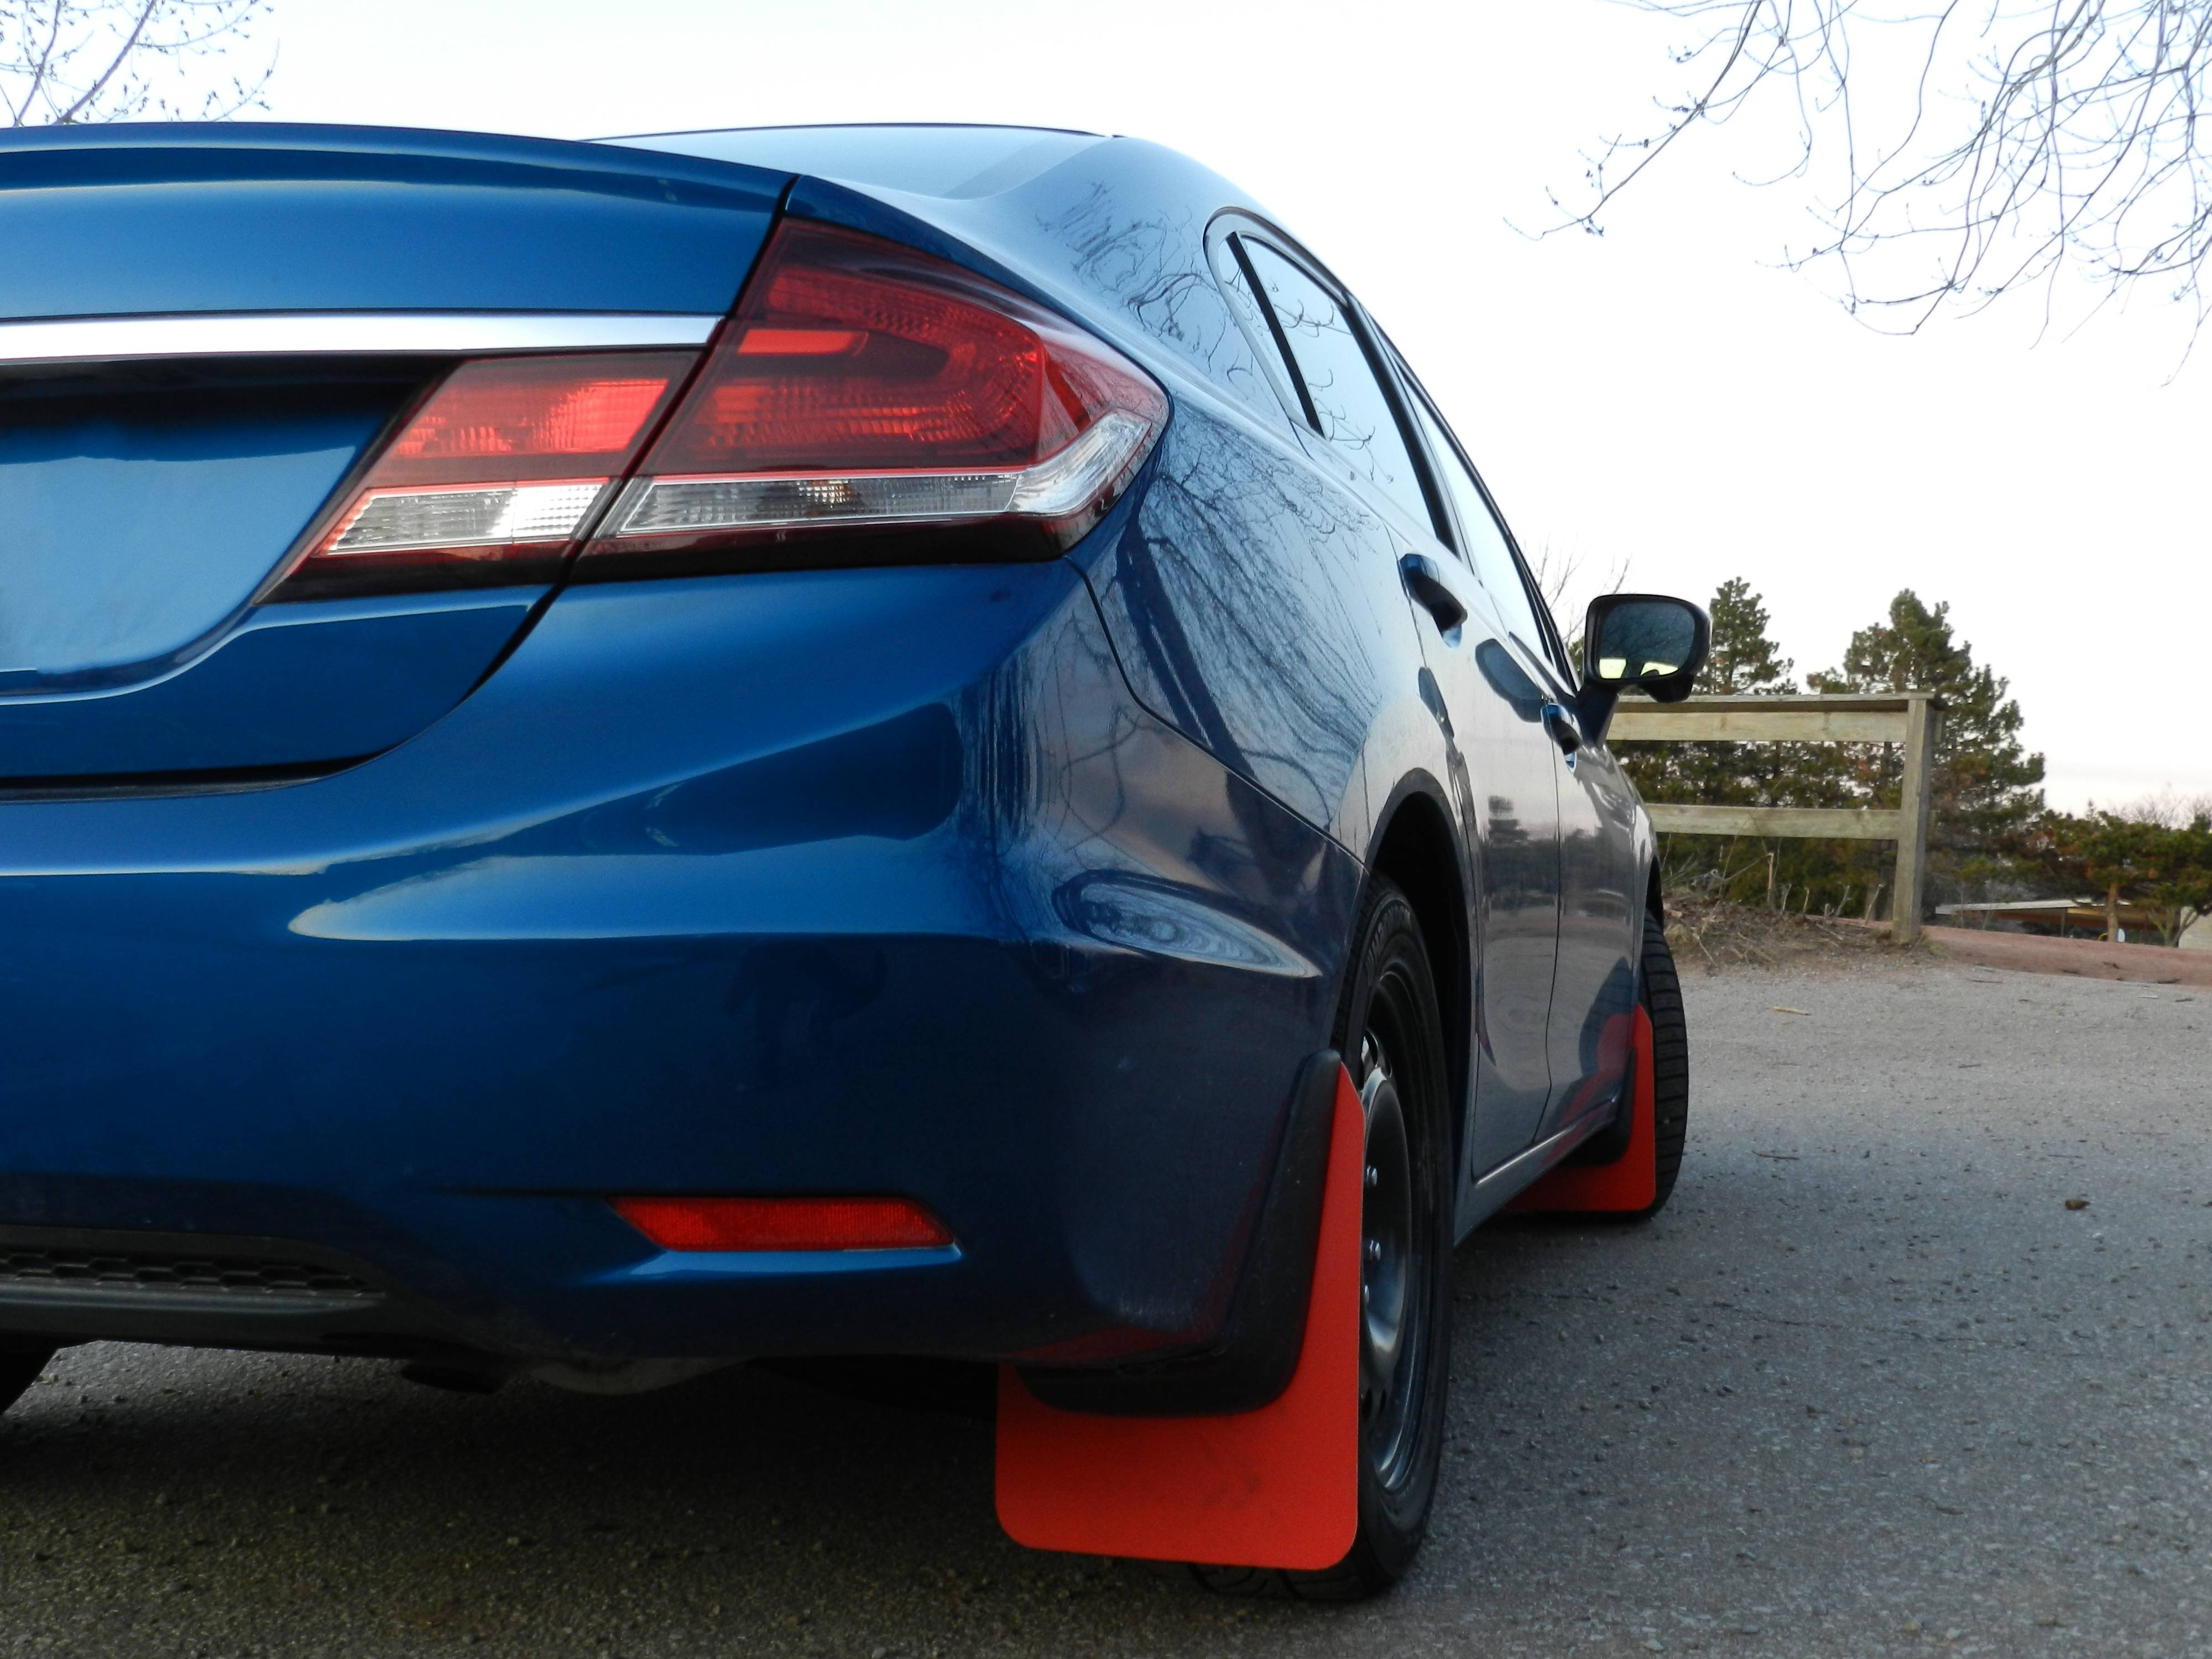 IKEA Cutting Boards Apparently Make Brilliant Mudflaps for a 2015 Honda Civic - autoevolution